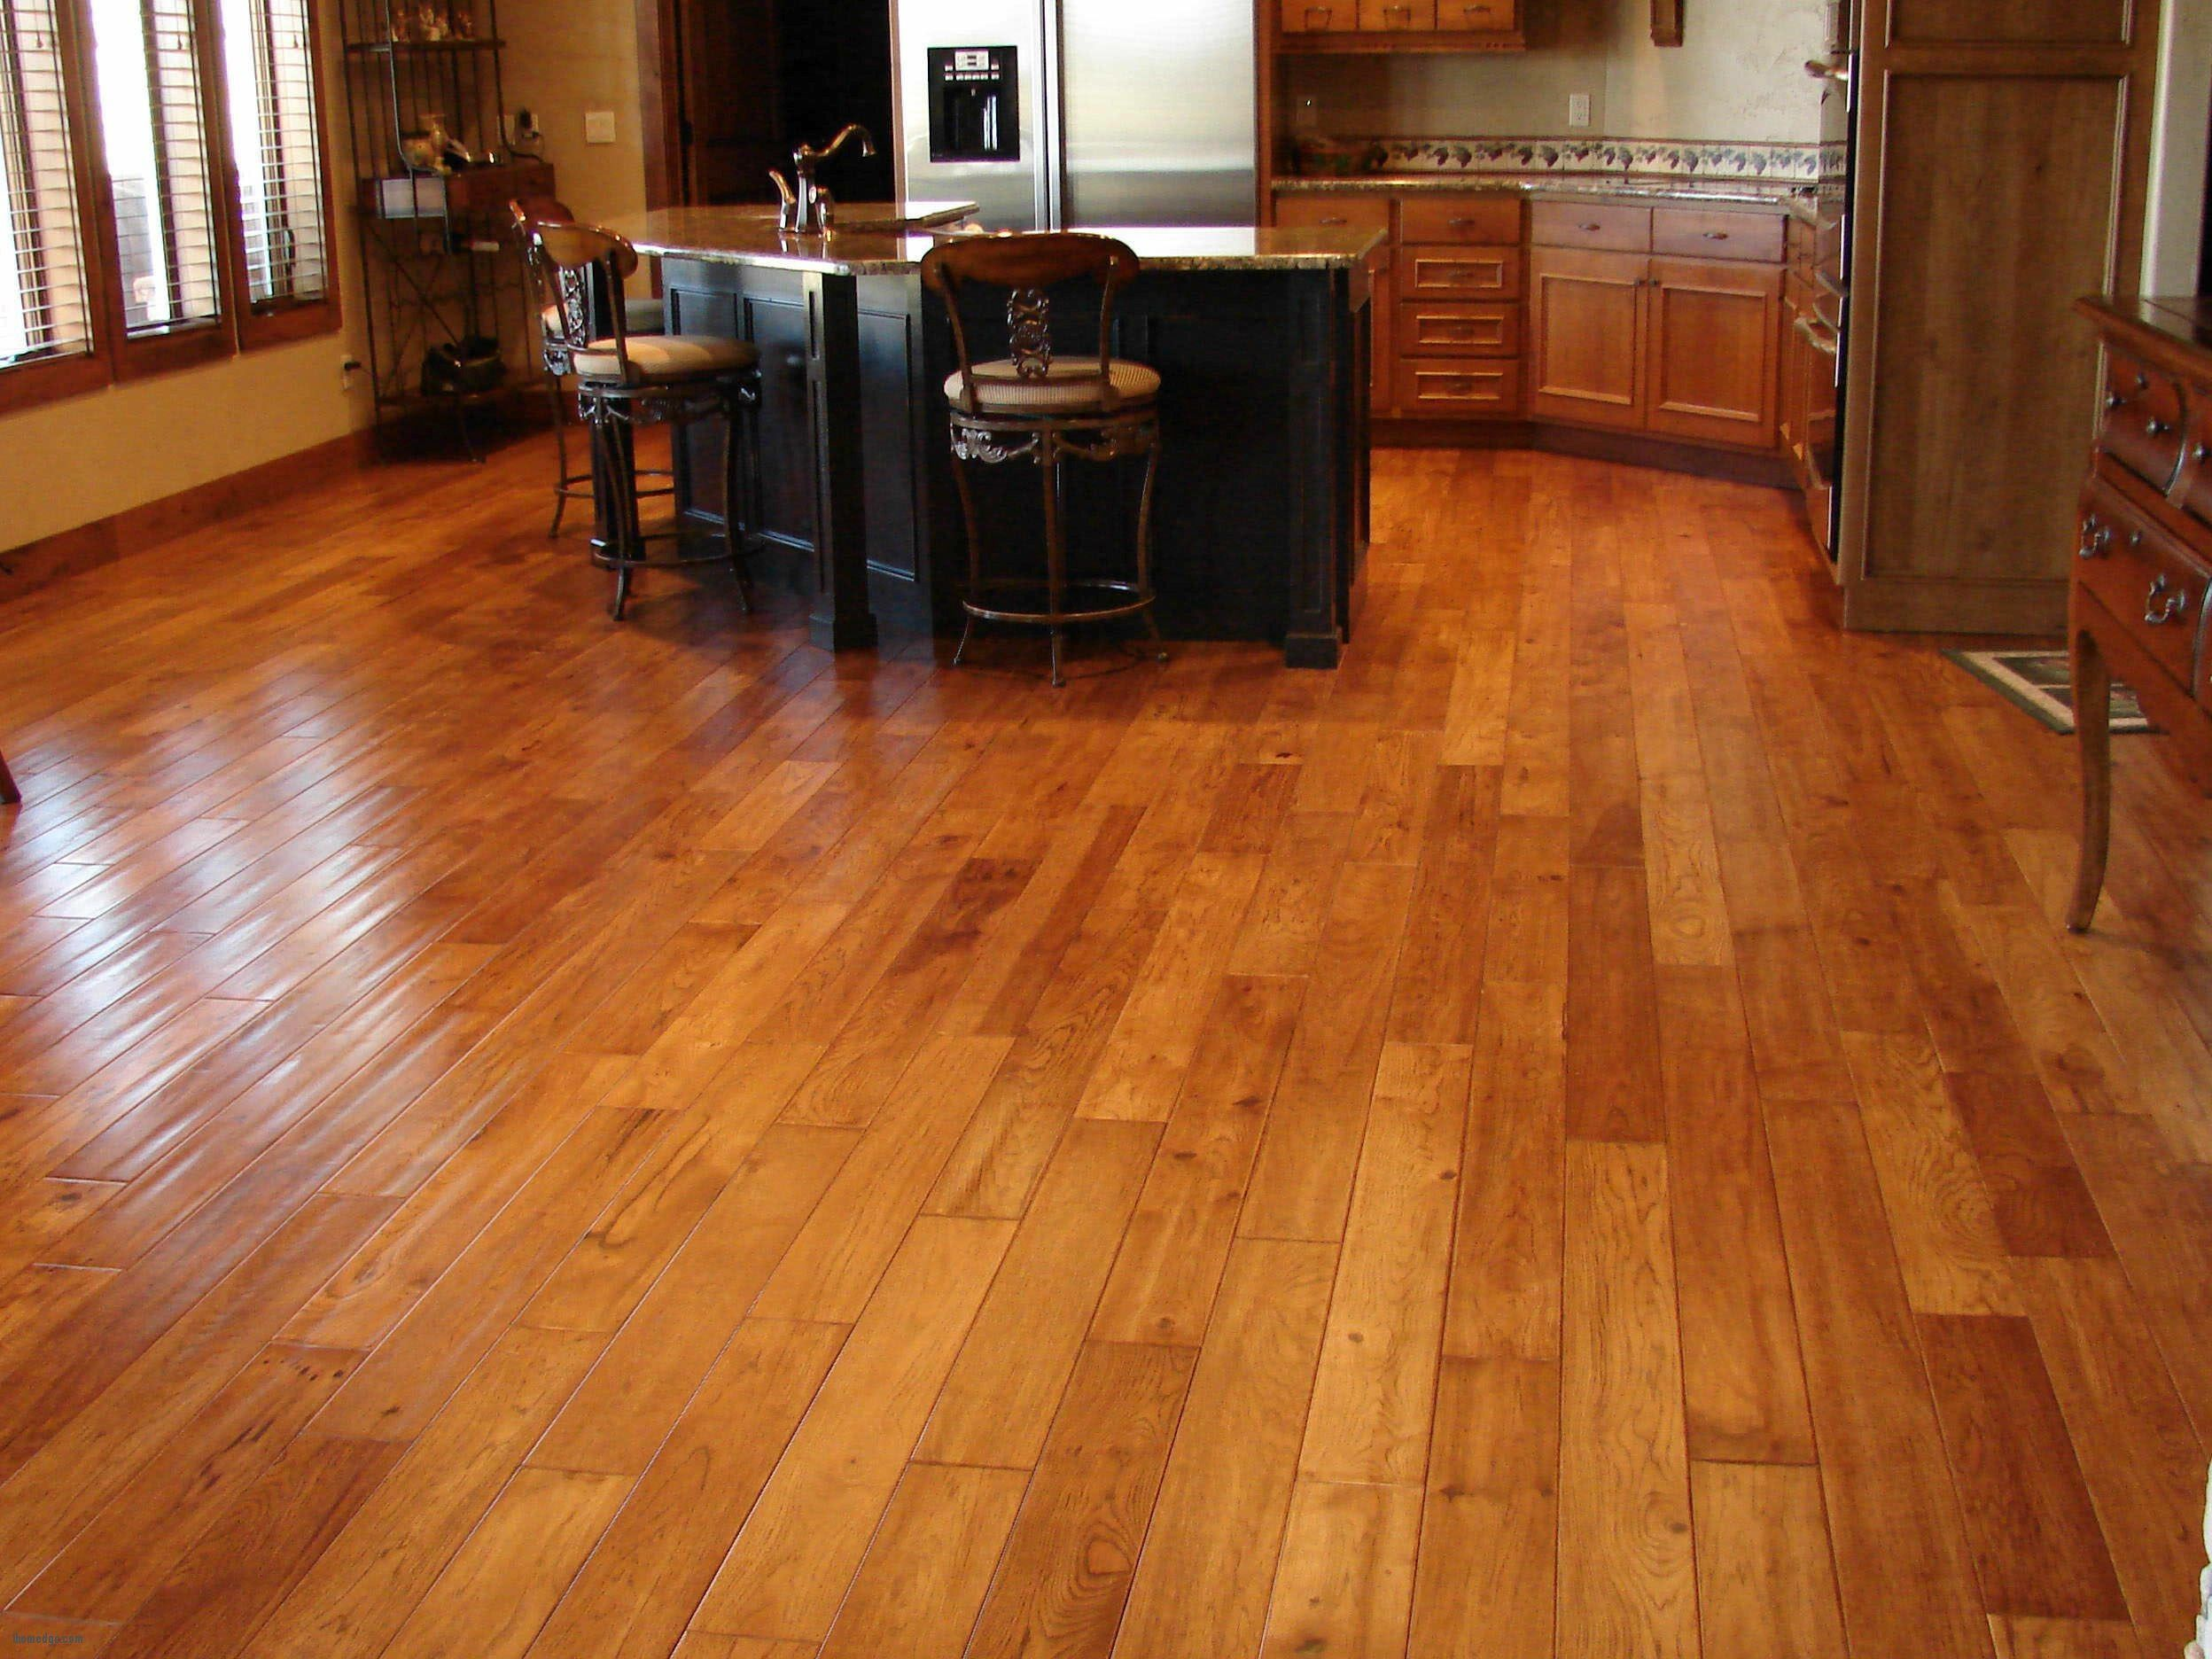 Design Wood Flooring Cost best beautiful waterproof laminate flooring cost vinyl wood sheet waterproof